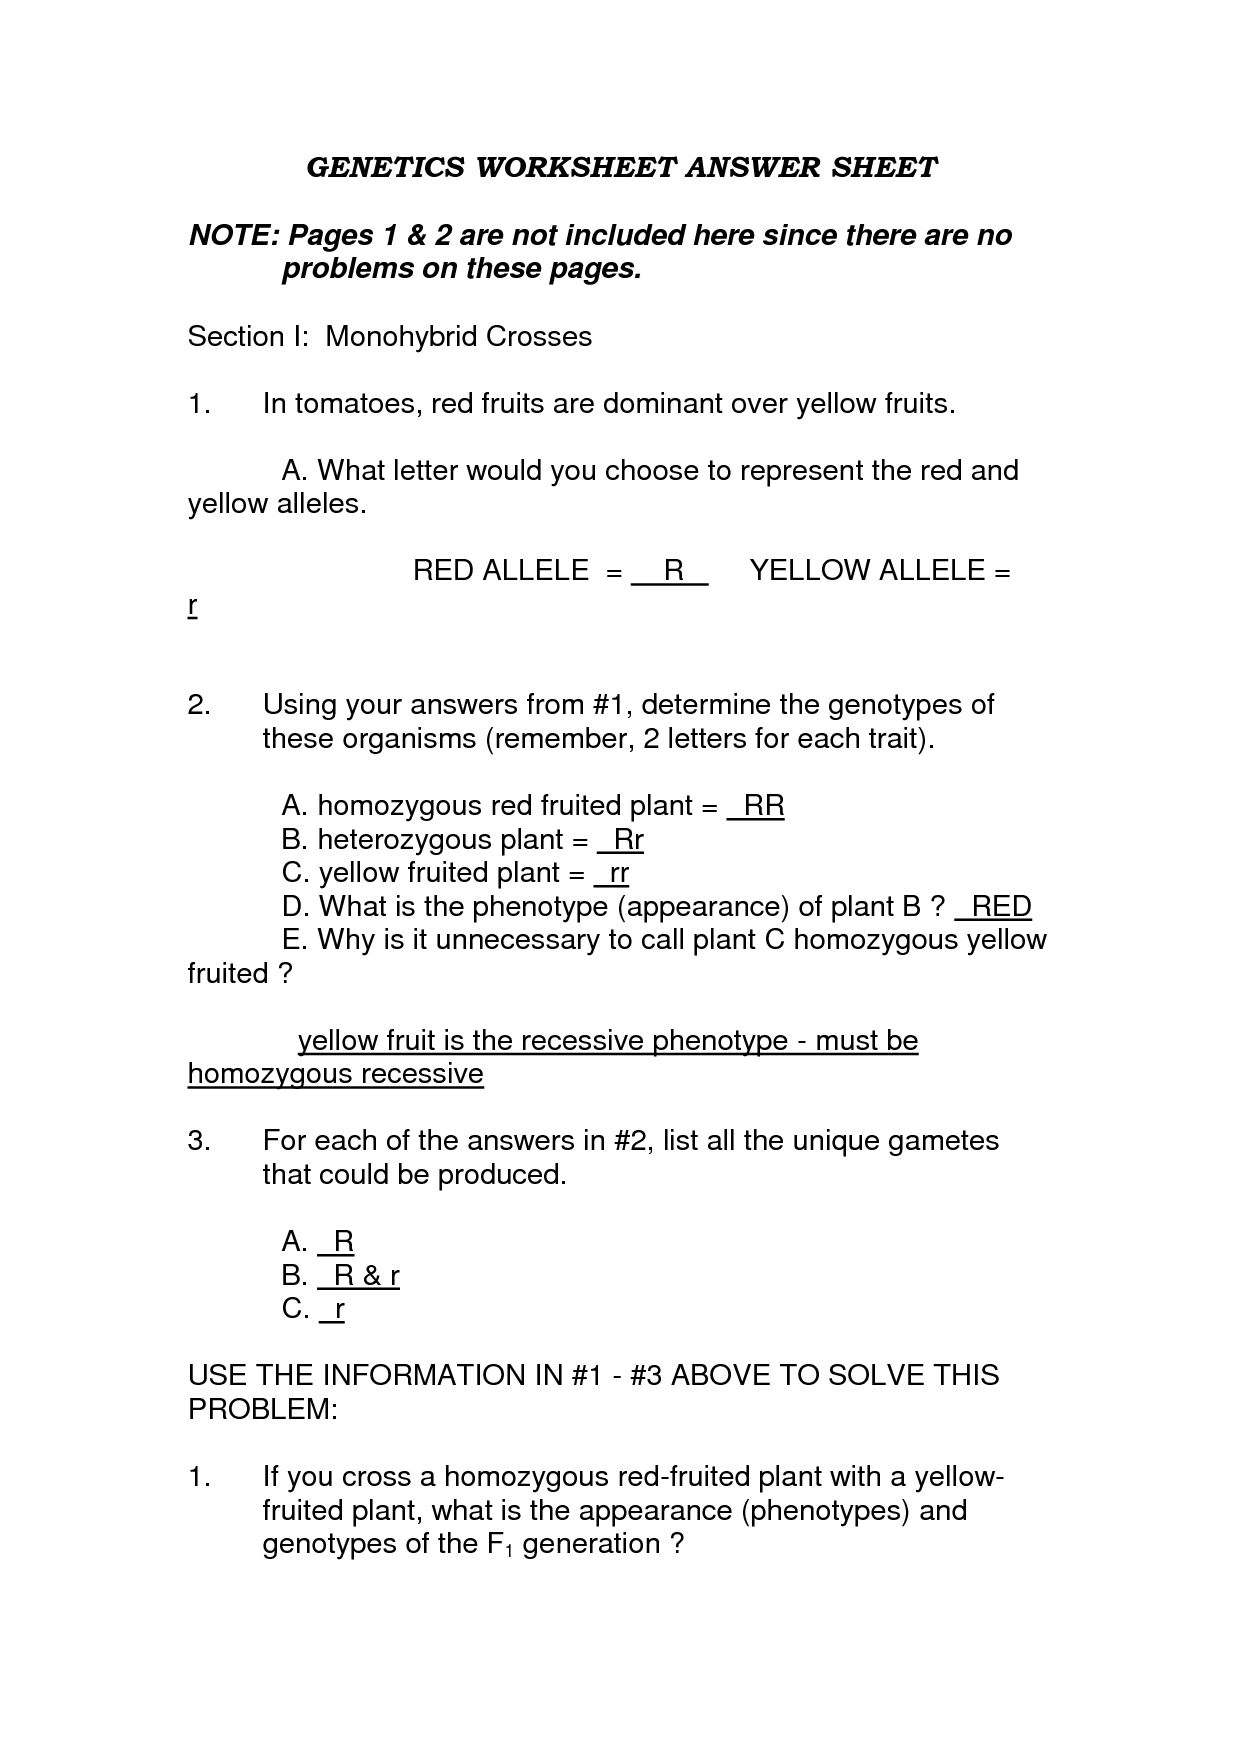 Pedigree Practice Worksheet Answer